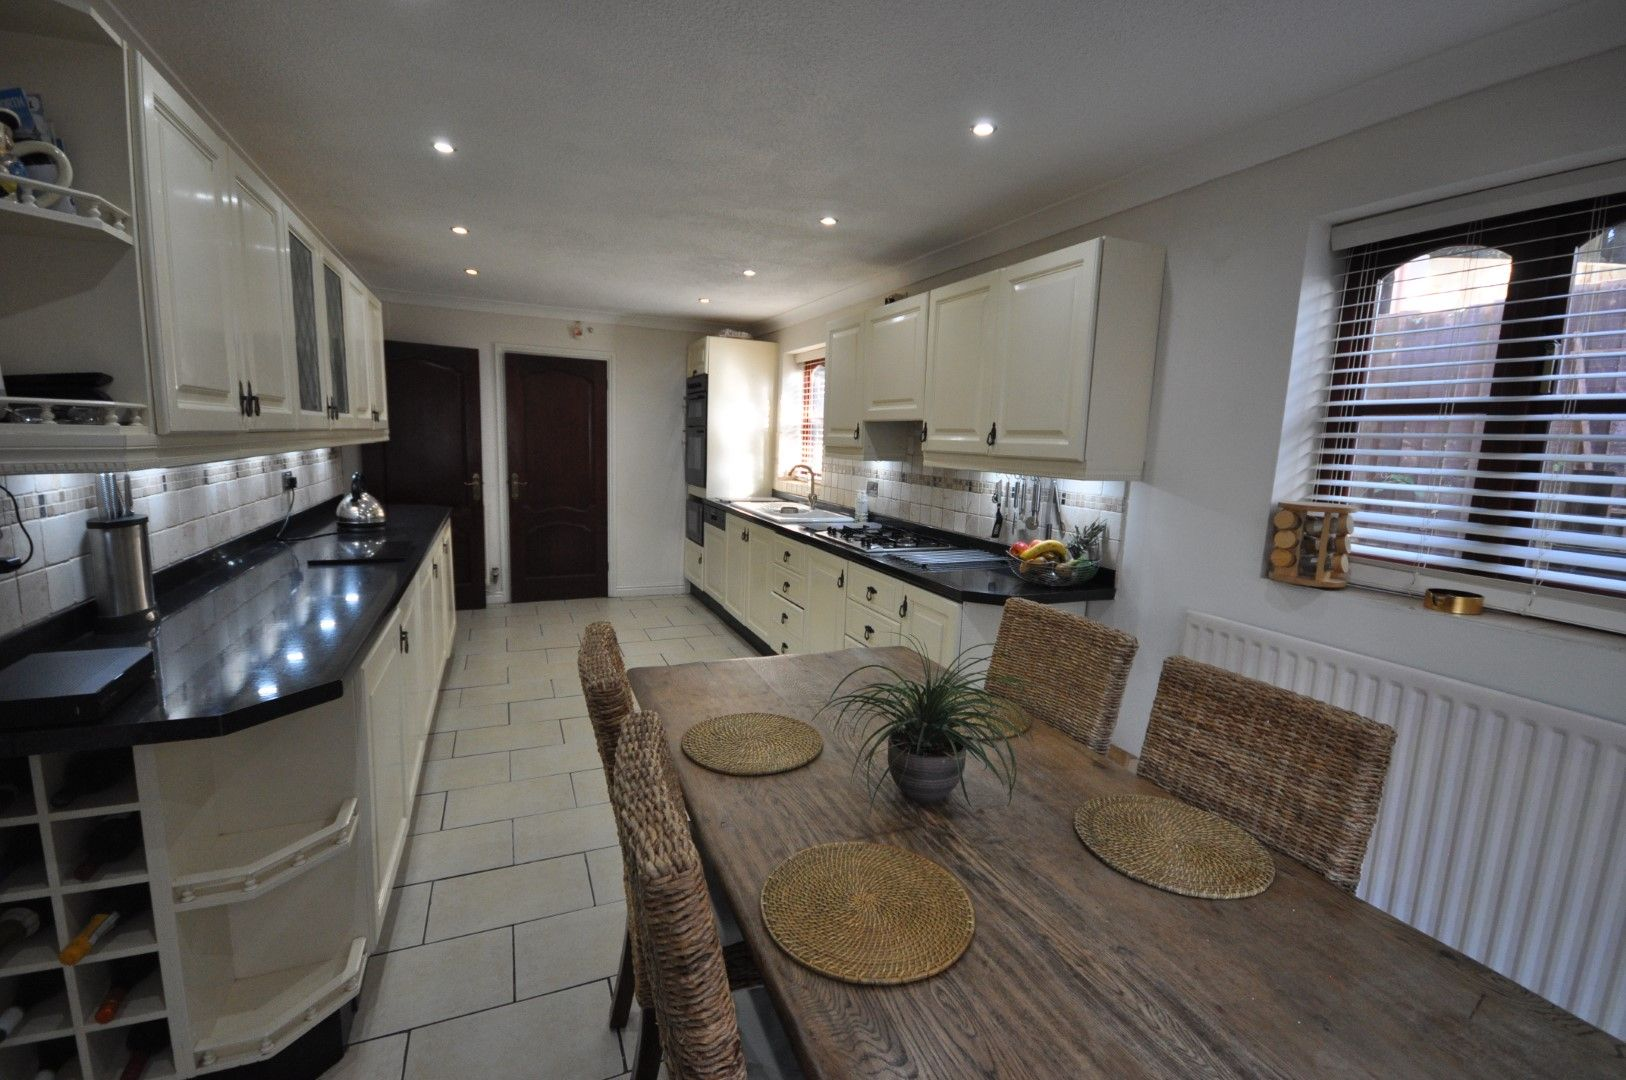 Image 1 of 3 of Breakfast Kitchen, on Accommodation Comprising for